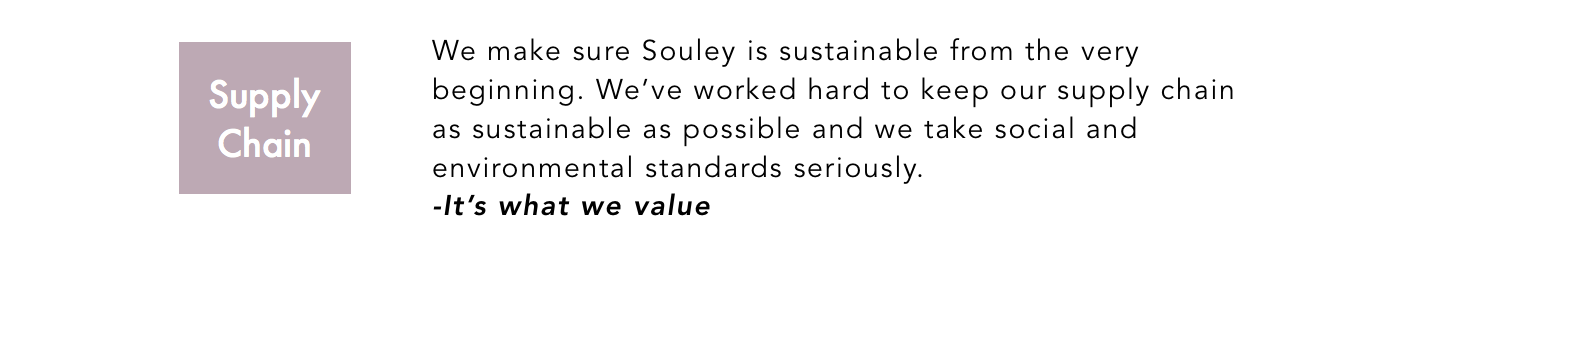 Sustainability Souley Clothing Supply Chain